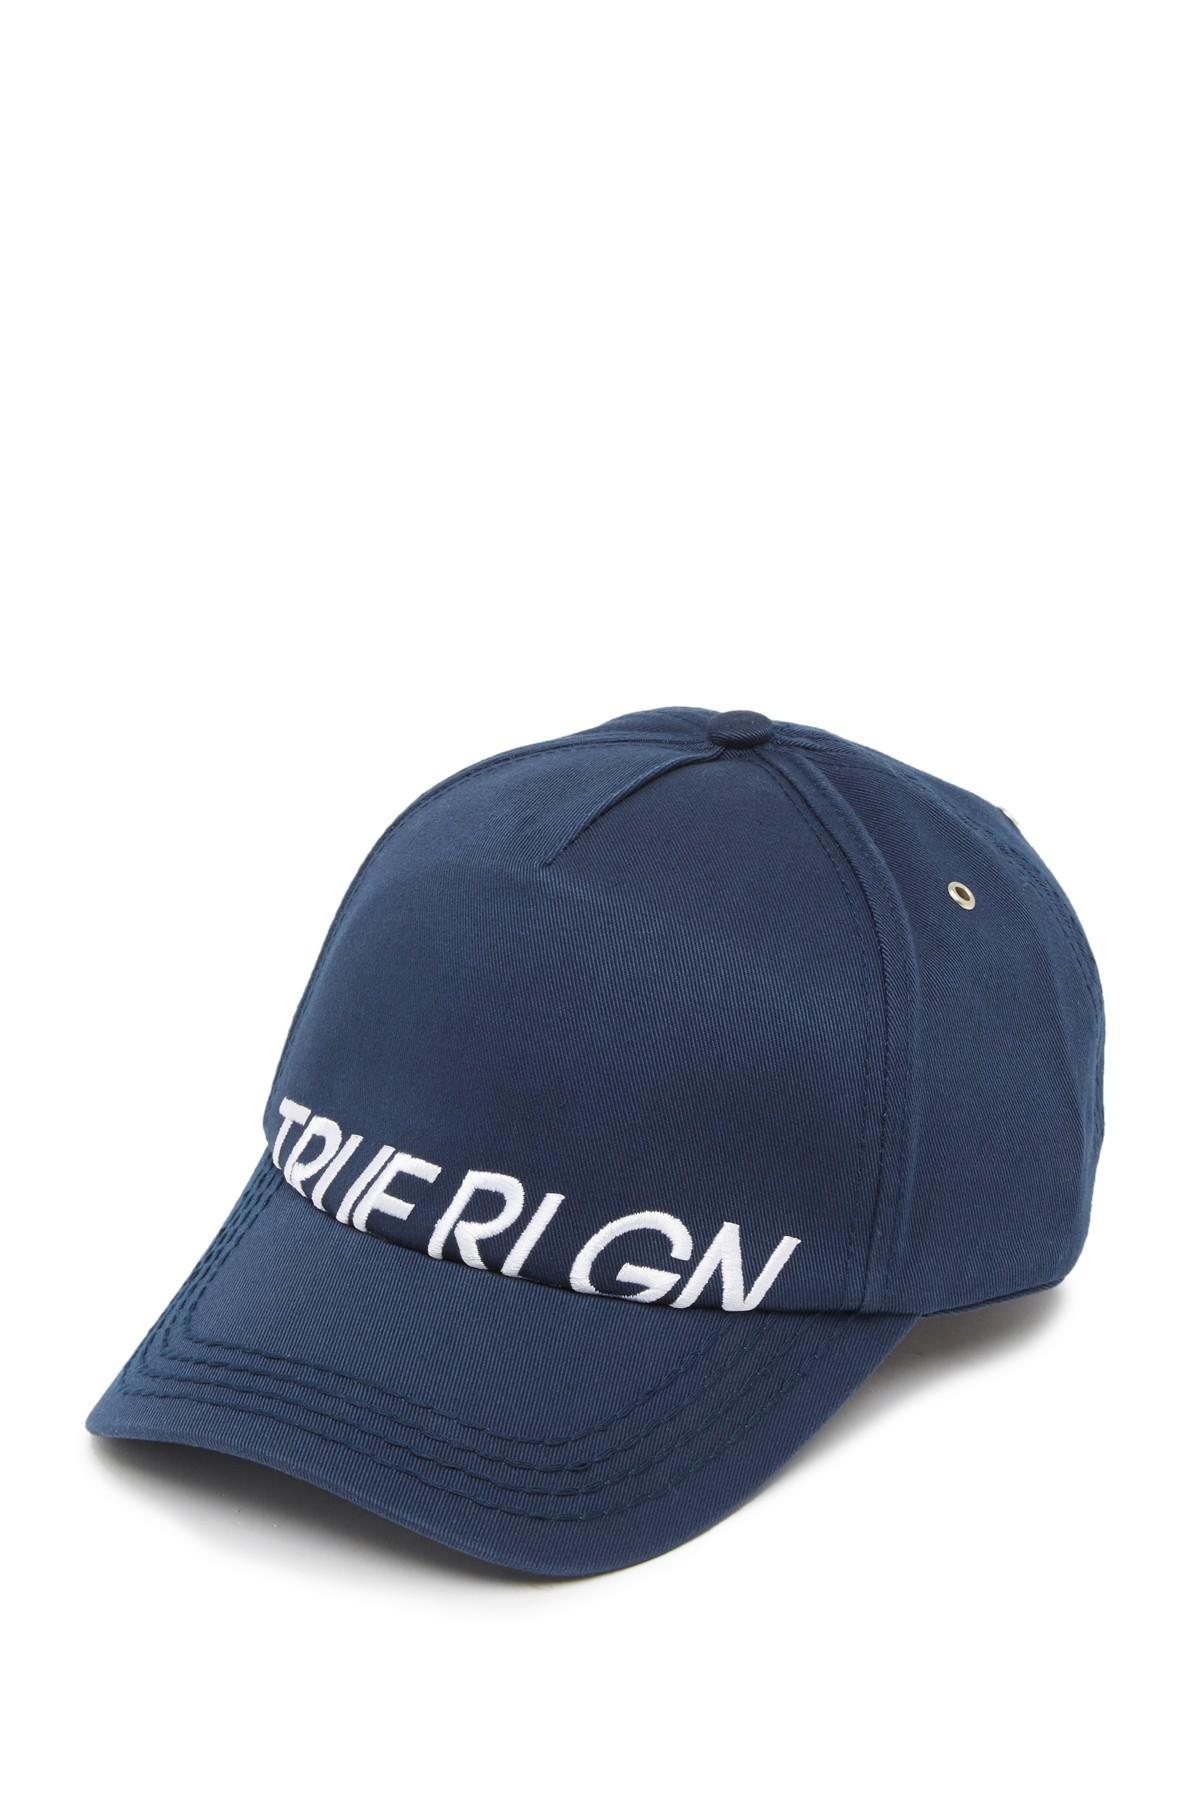 8b0818b7d5568 Lyst - True Religion Partial Name Logo Baseball Cap in Blue for Men